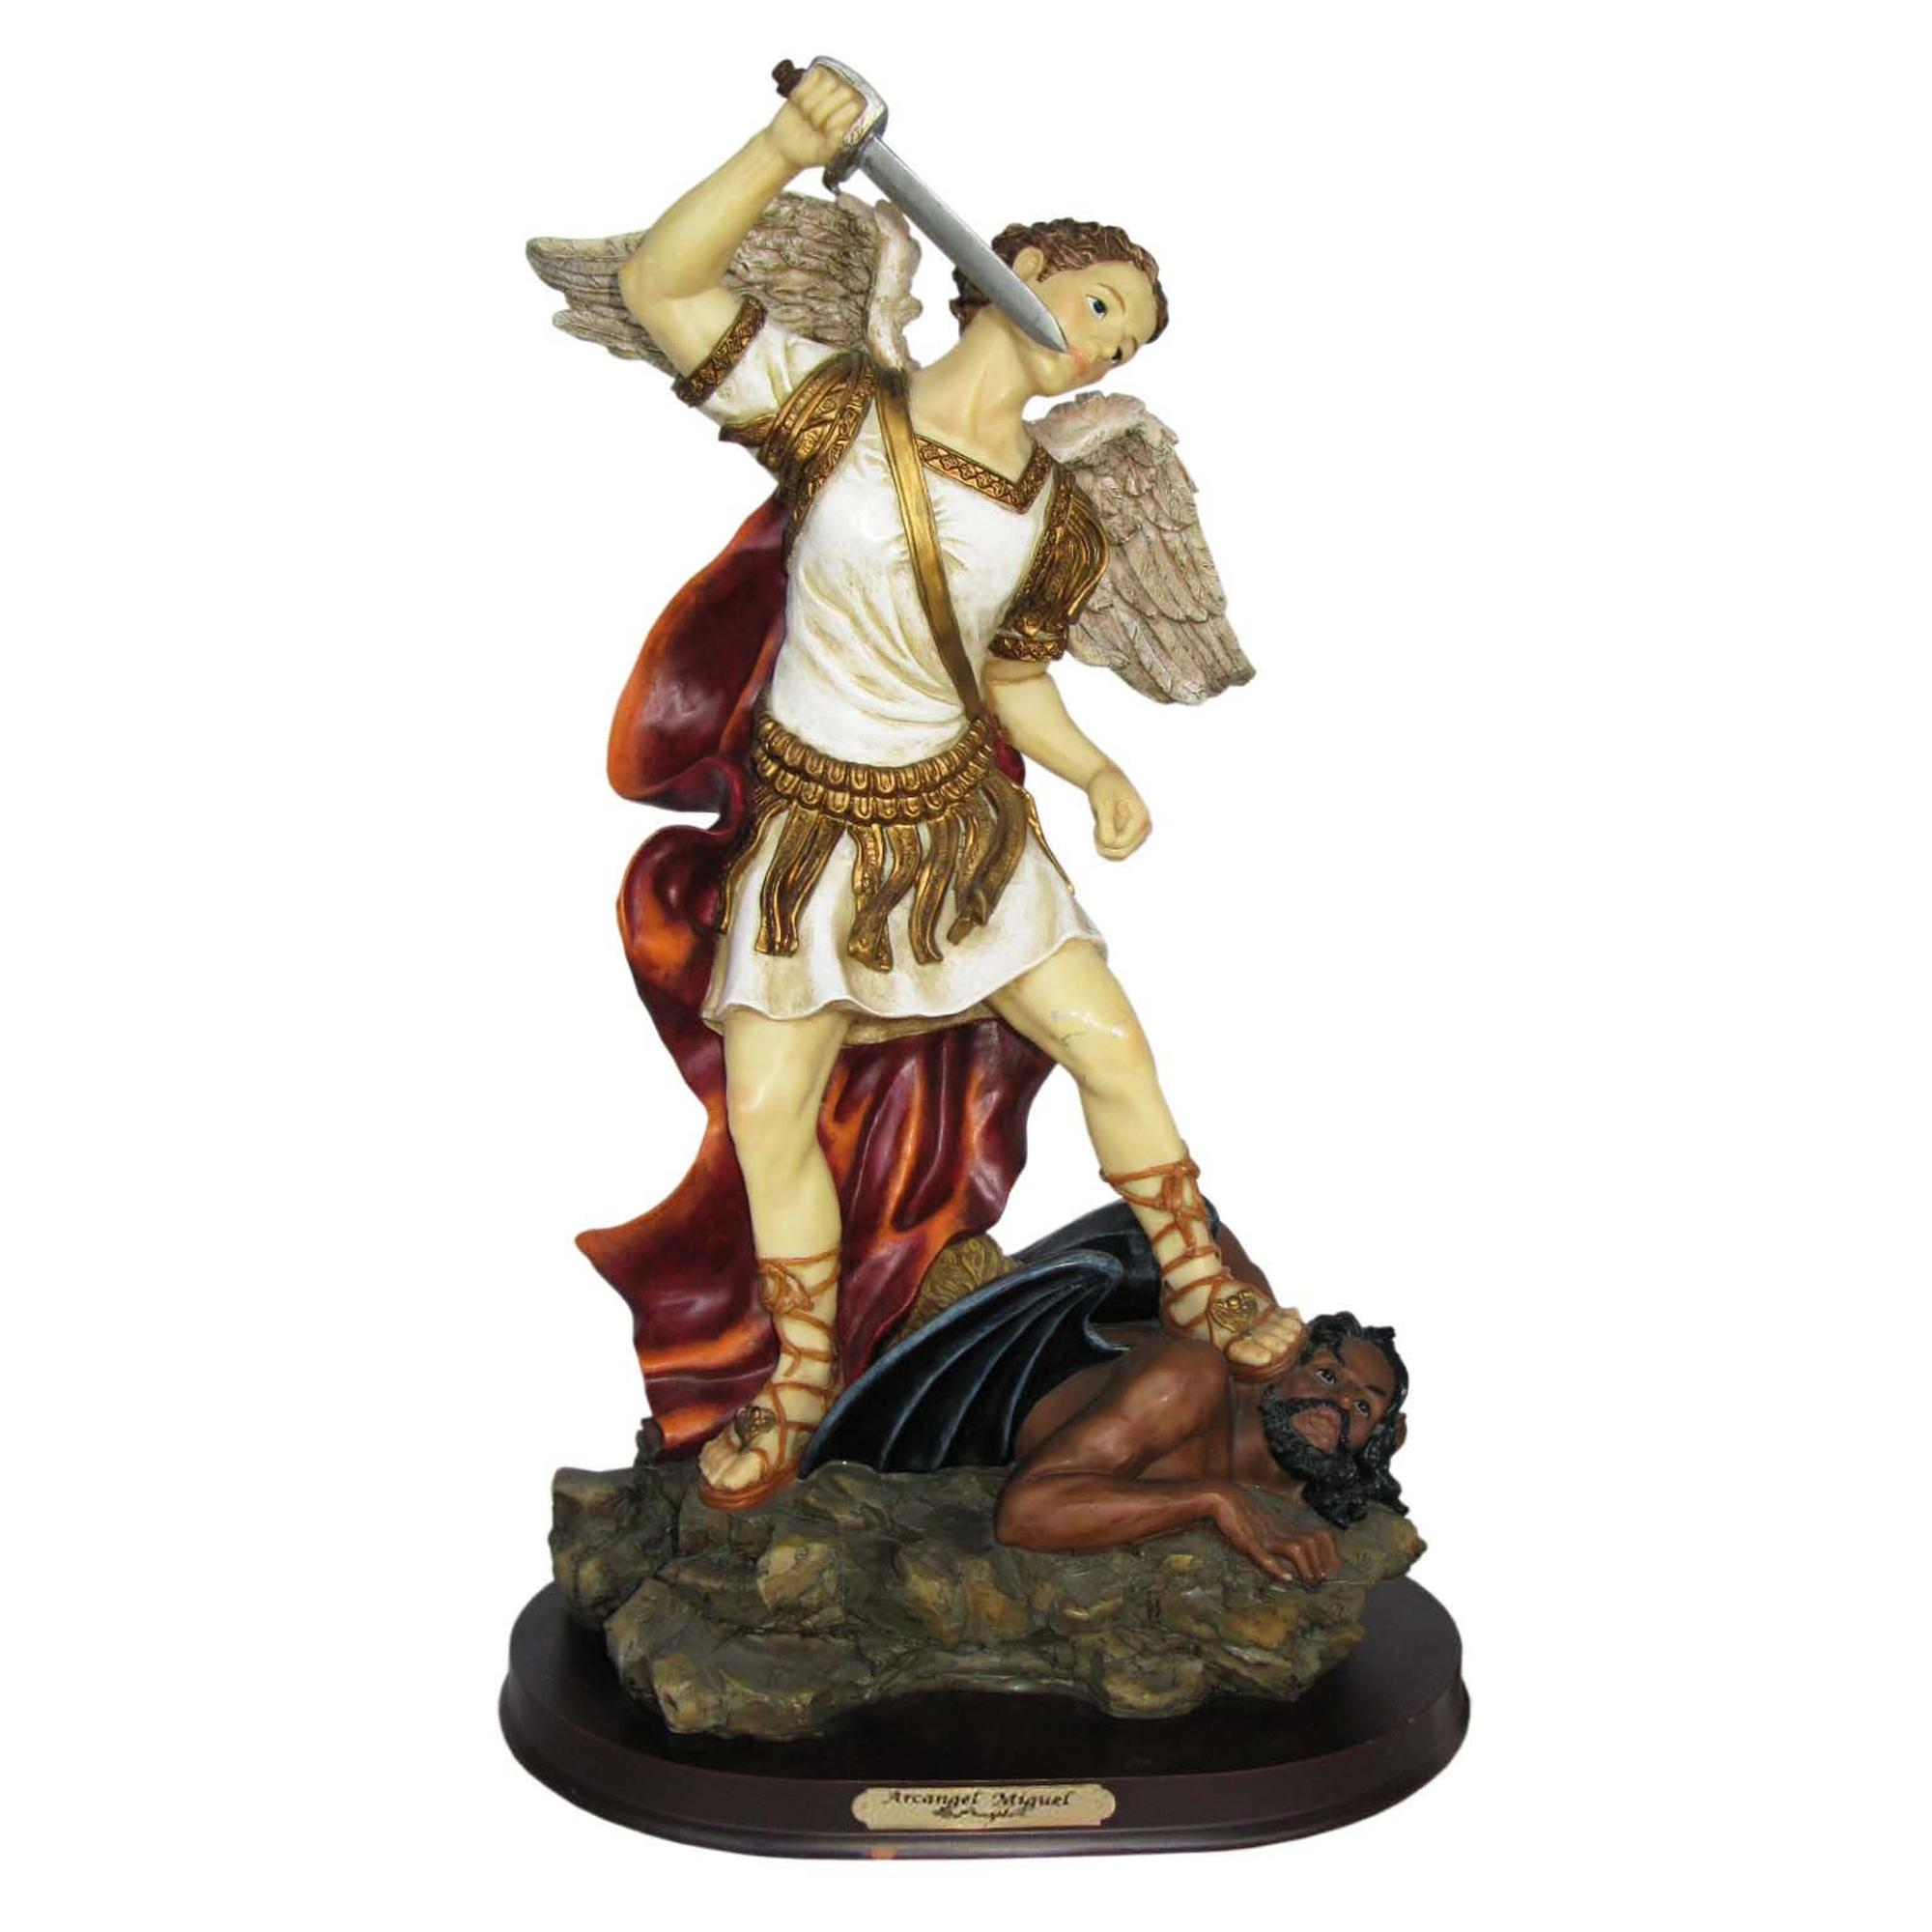 ARC MIGUEL FIGURE 16 inches - 556-33128